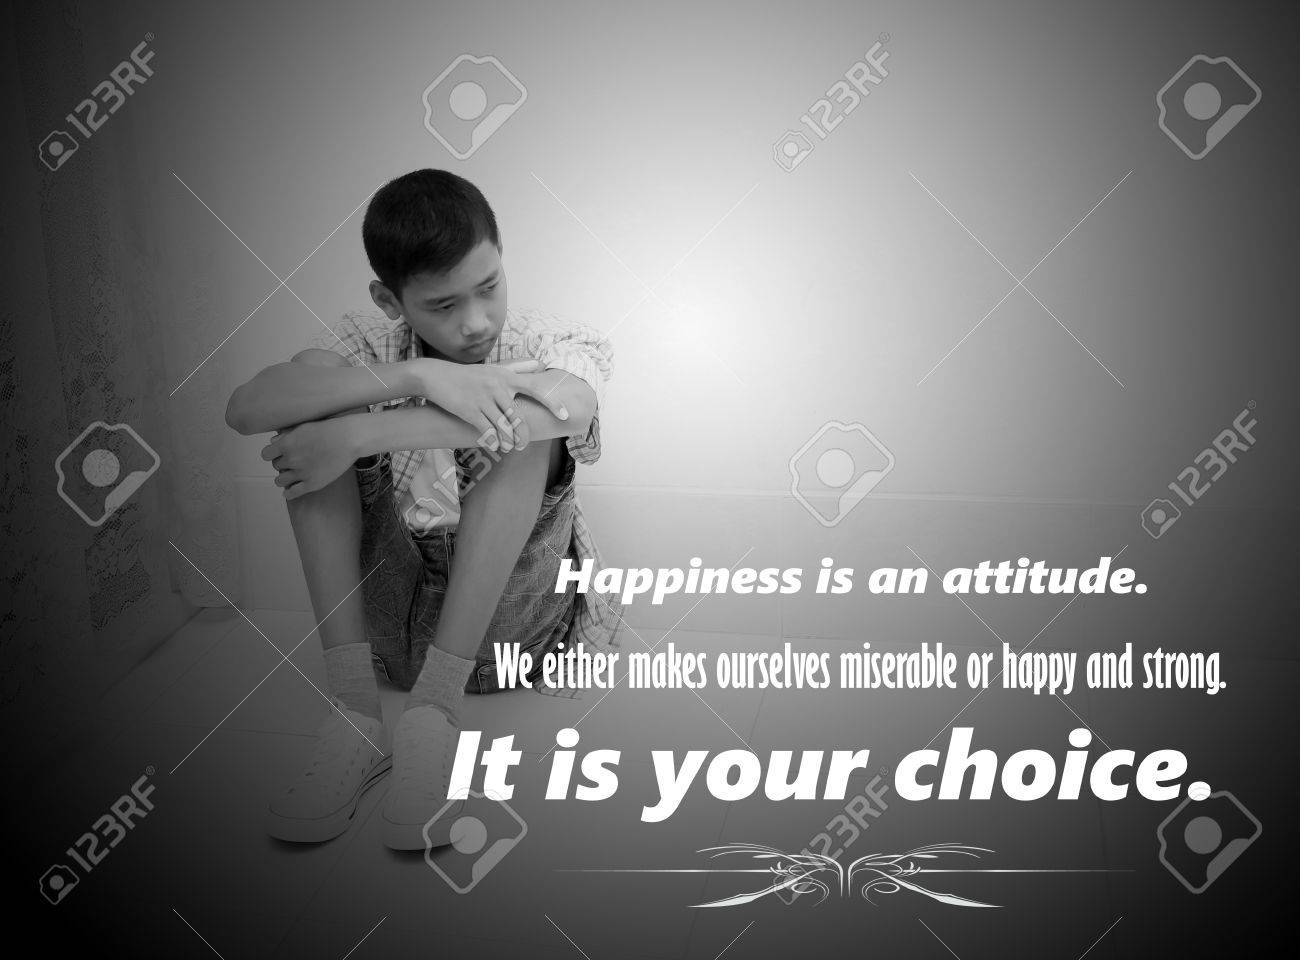 Inspirational Quotes For Life In Boy Sad Blurred Black And White